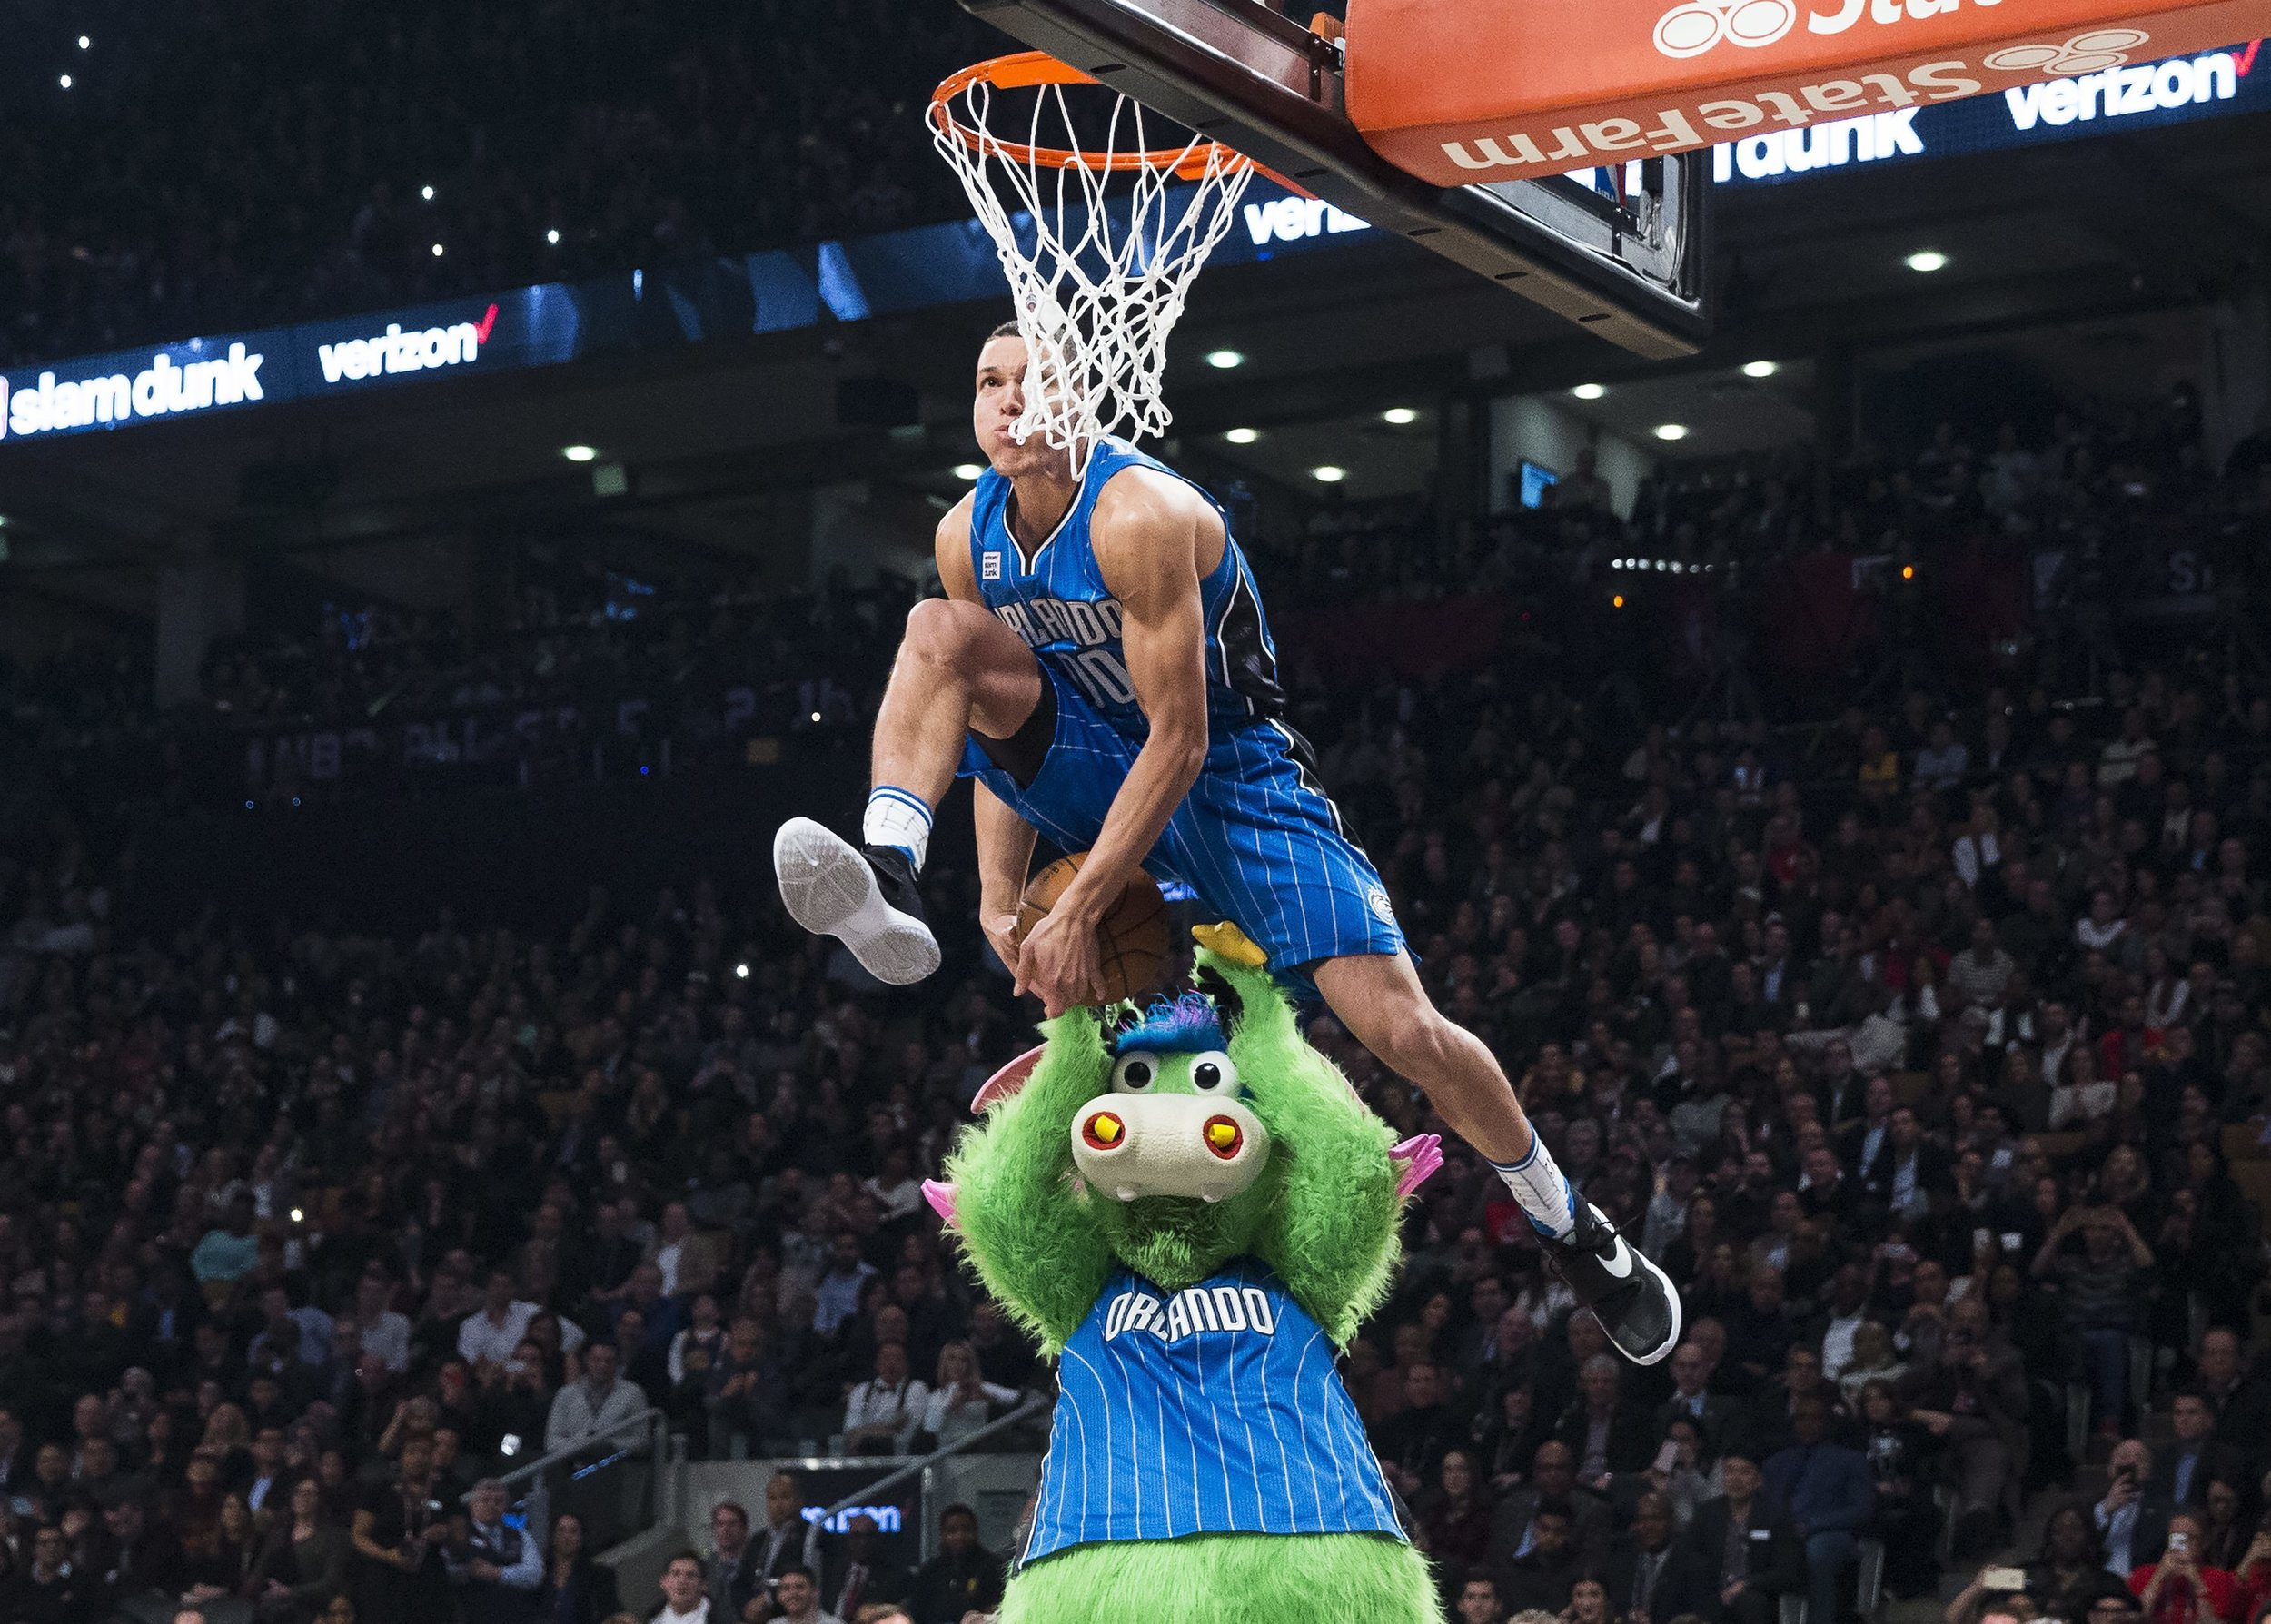 Orlando Magic forward Aaron Gordon slam dunks during the NBA all-star skills competition in Toronto on Saturday, Feb. 13, 2016. (Mark Blinch/The Canadian Press via AP)